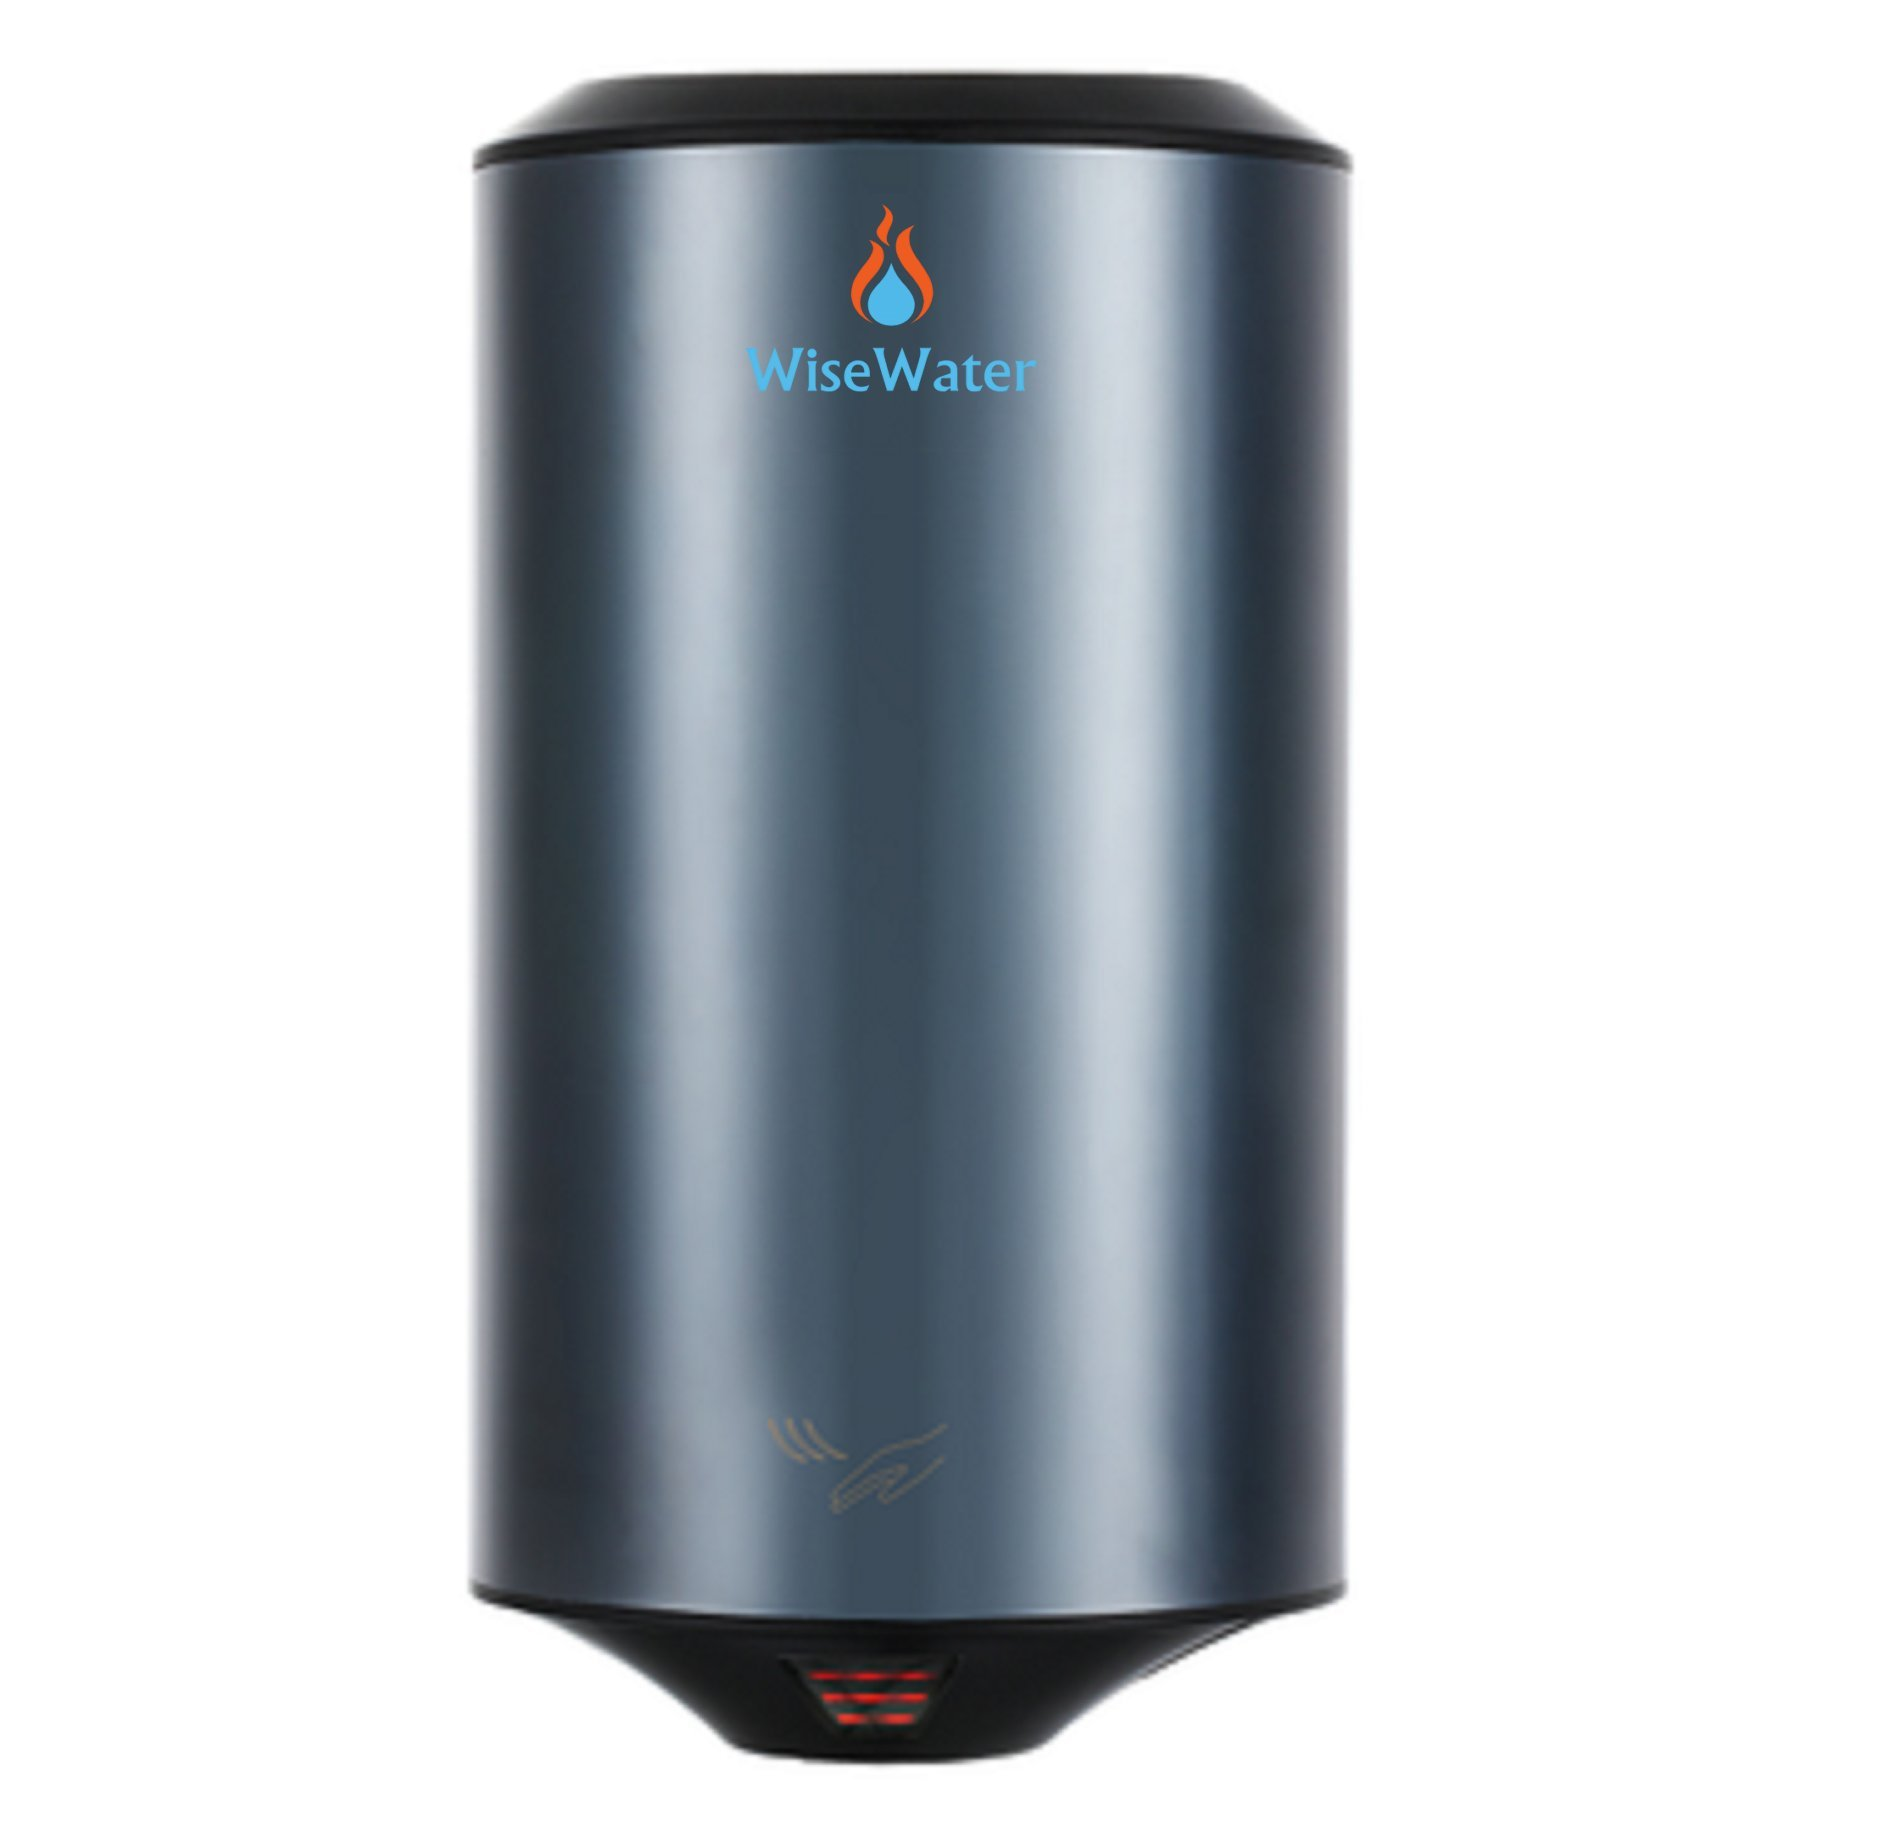 WiseWater Electric Hand Dryer Commercial 1150W Stainless Steel Cover - Dry Hands in 10 Seconds, Low Noise 72 dB for Bathrooms, Hotel, Restaurant